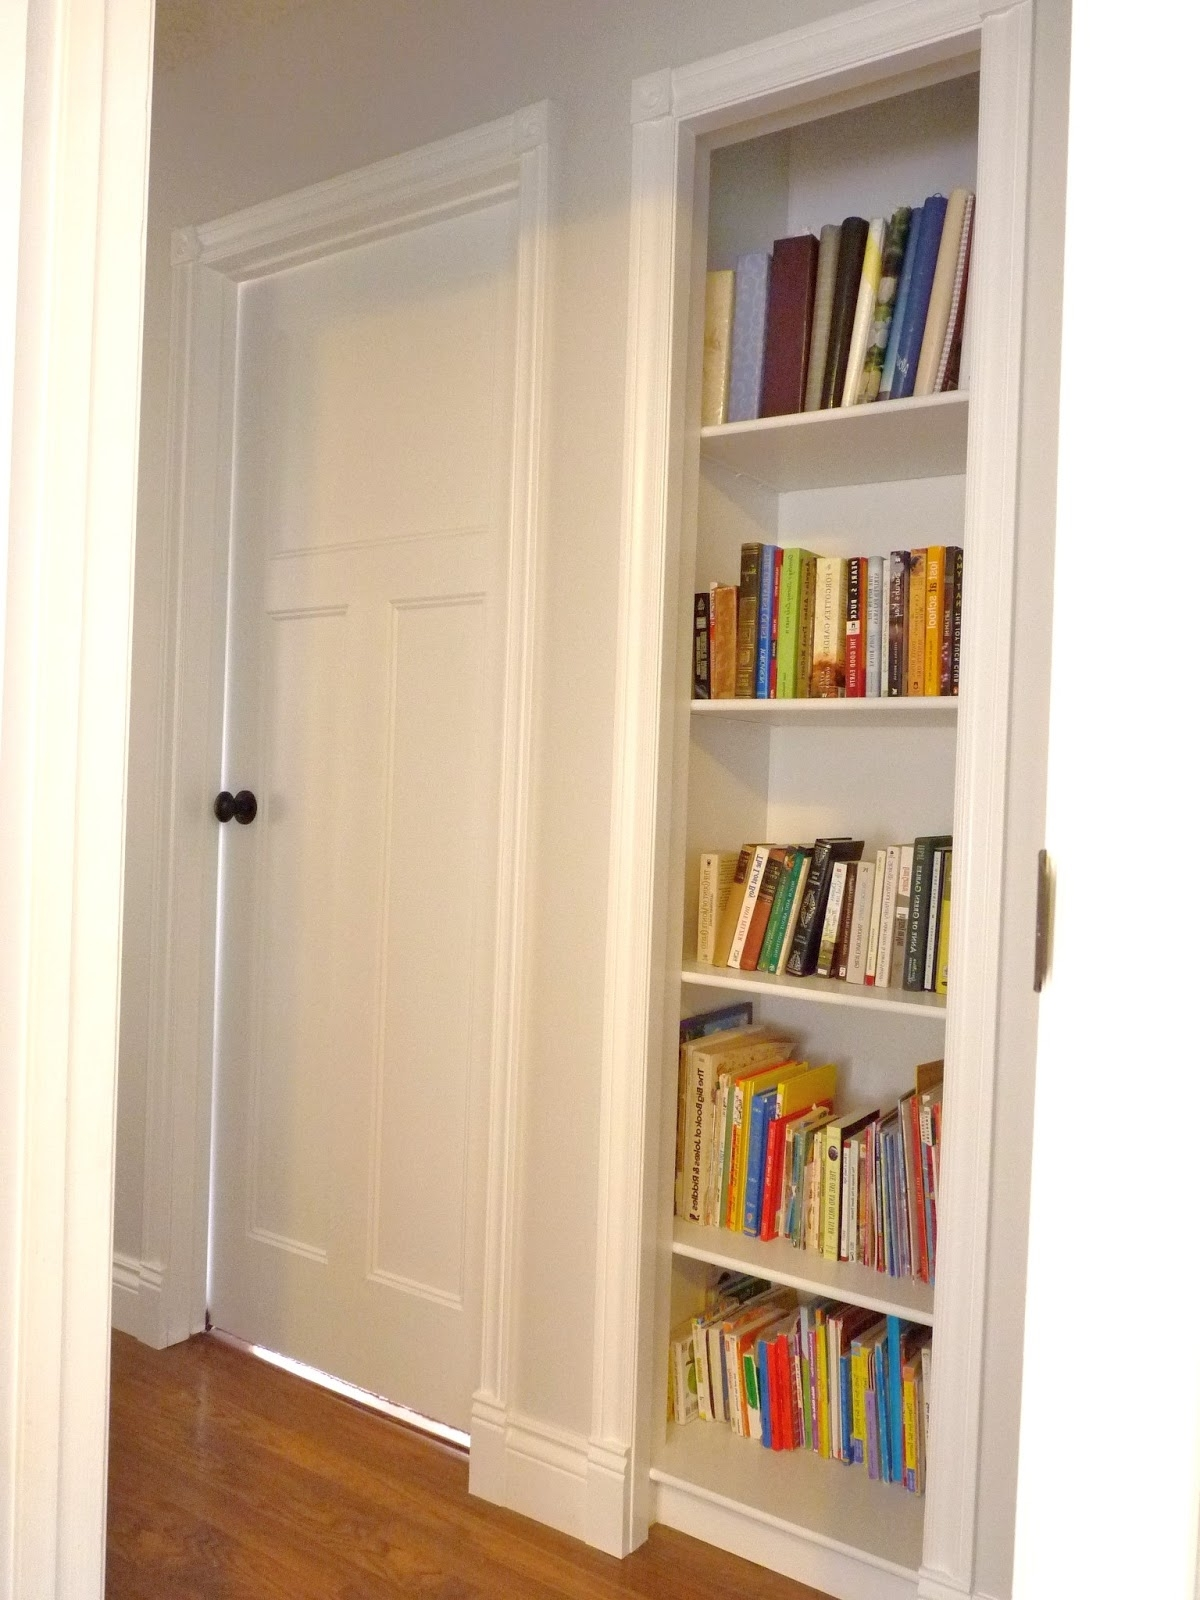 D I Y D E S I G N: Closet Bookshelf Throughout Well Liked Bookcases Cupboard (View 3 of 15)